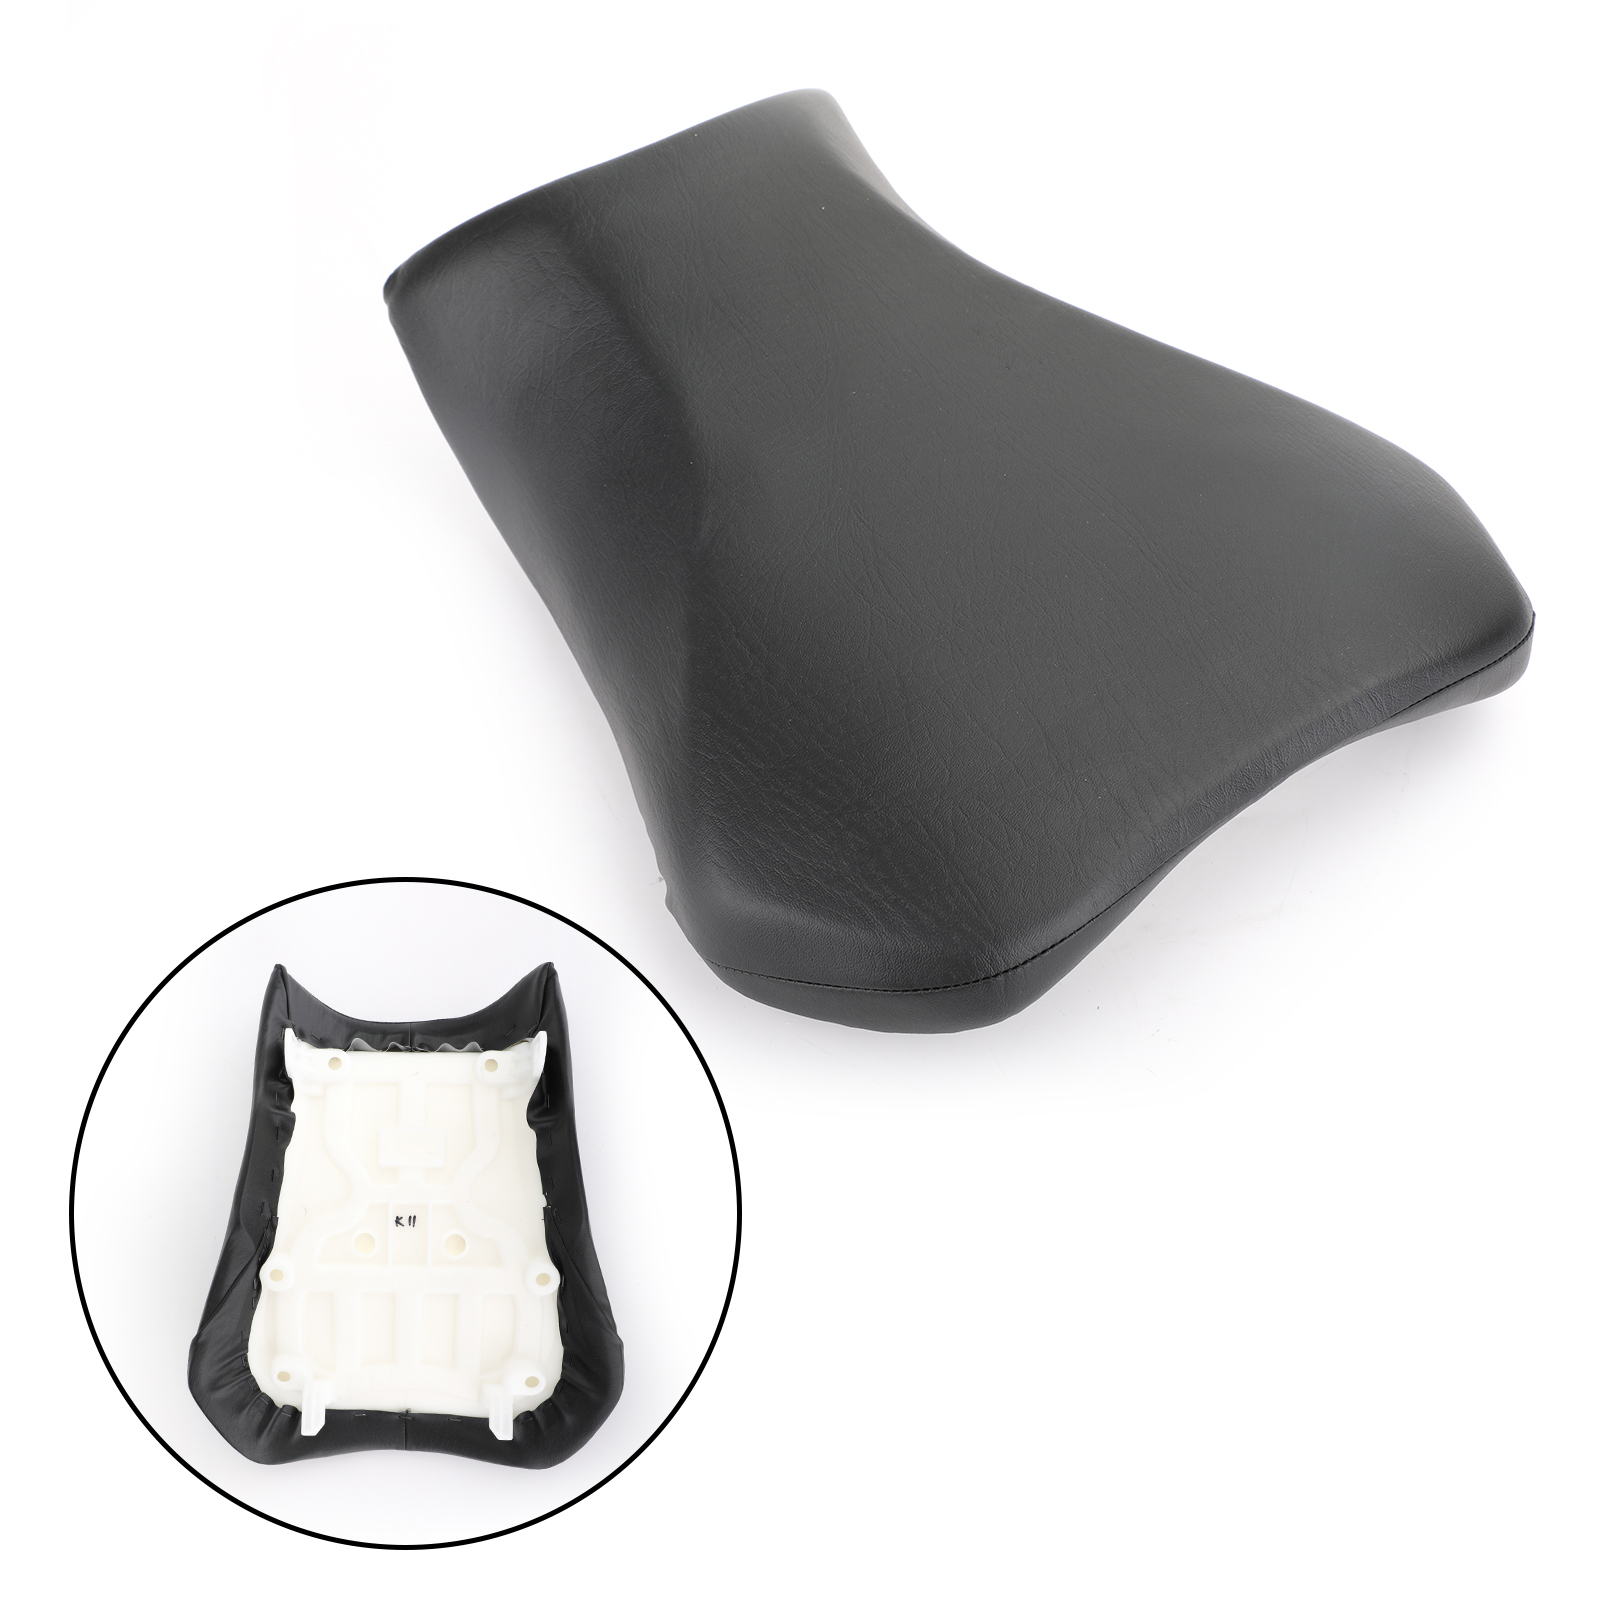 Areyourshop Motorcycle Black Front Driver Seat Rider Cushion Fit For Suzuki 650 700 2011-2019 Motorcycle Accessories